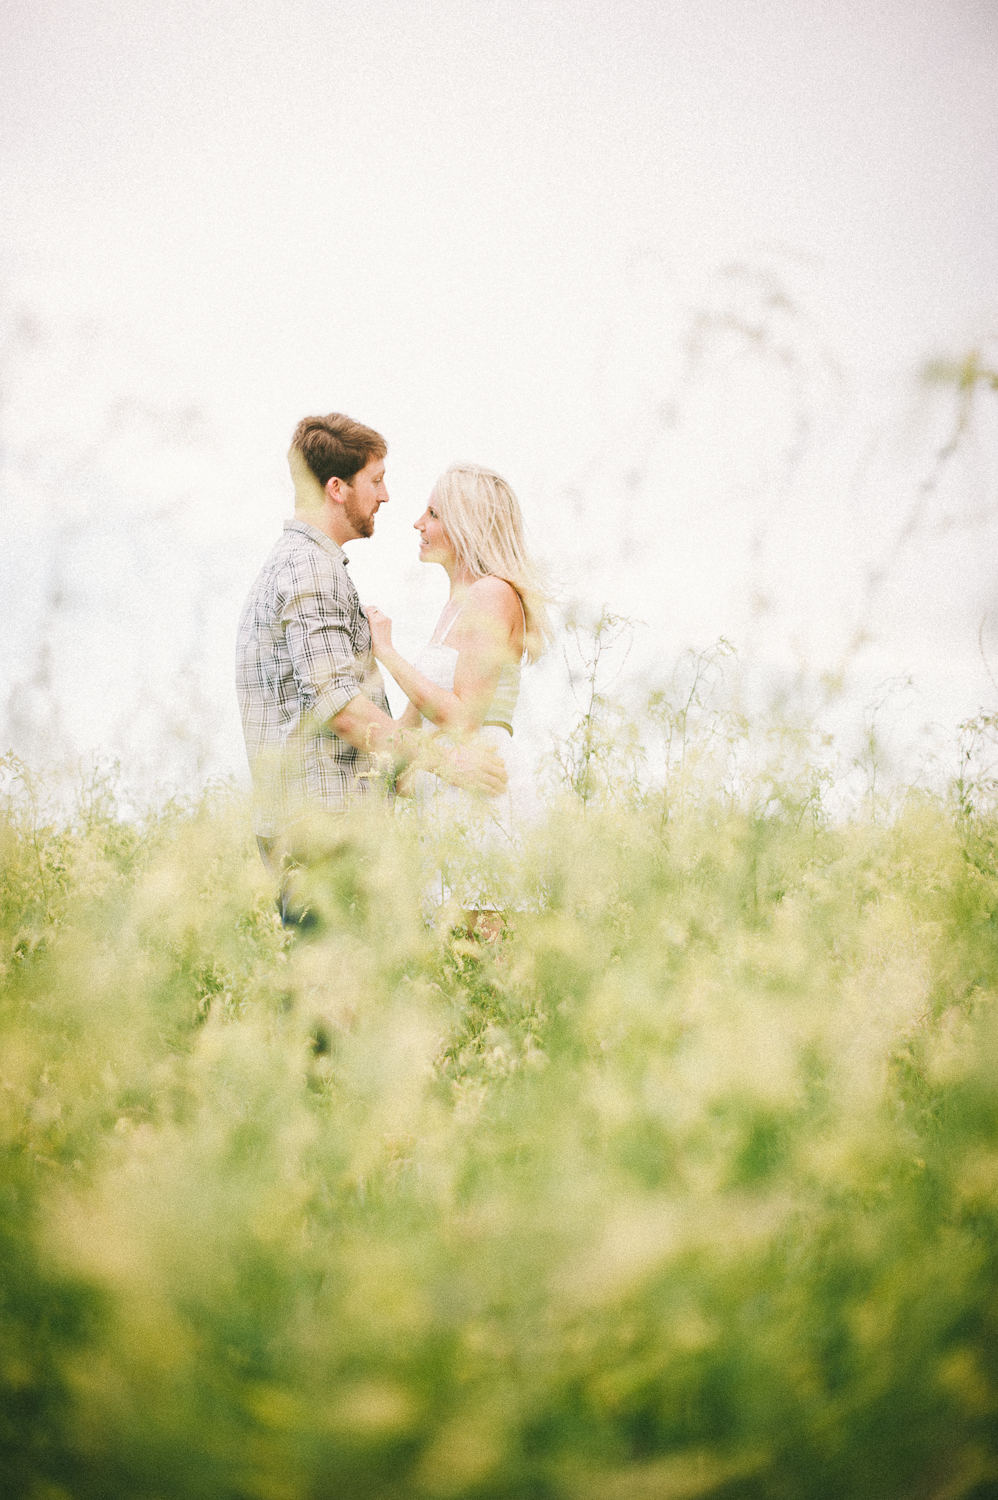 Natalie + Mike {Engagement}-018-Edit.jpg